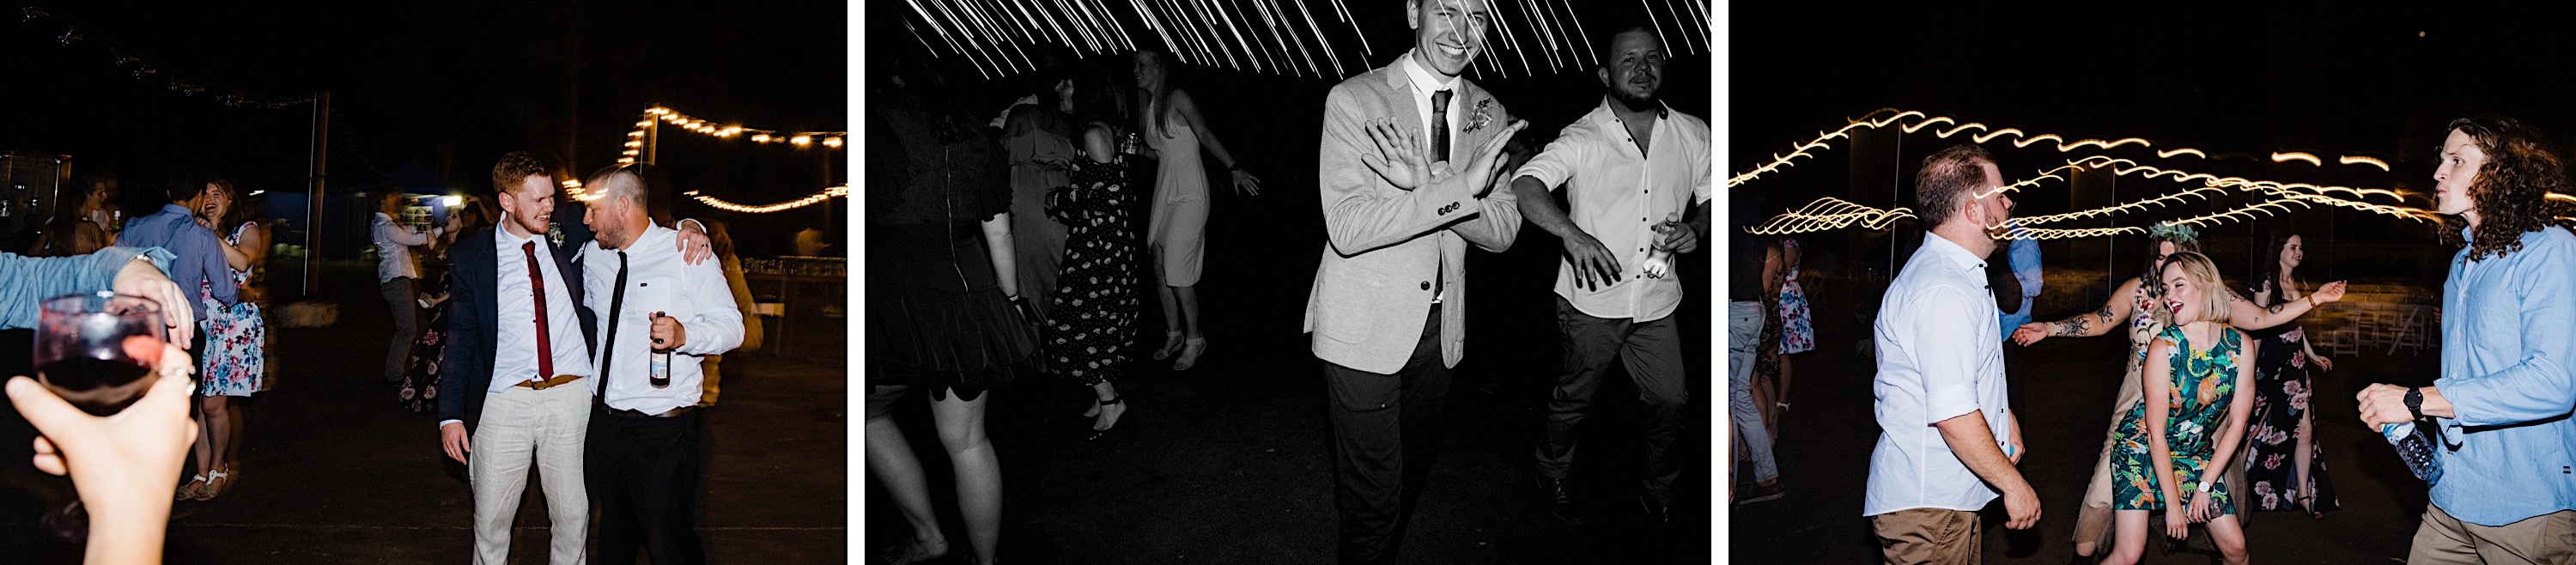 Photos of guests dancing at a Donnelly River Wedding Reception.